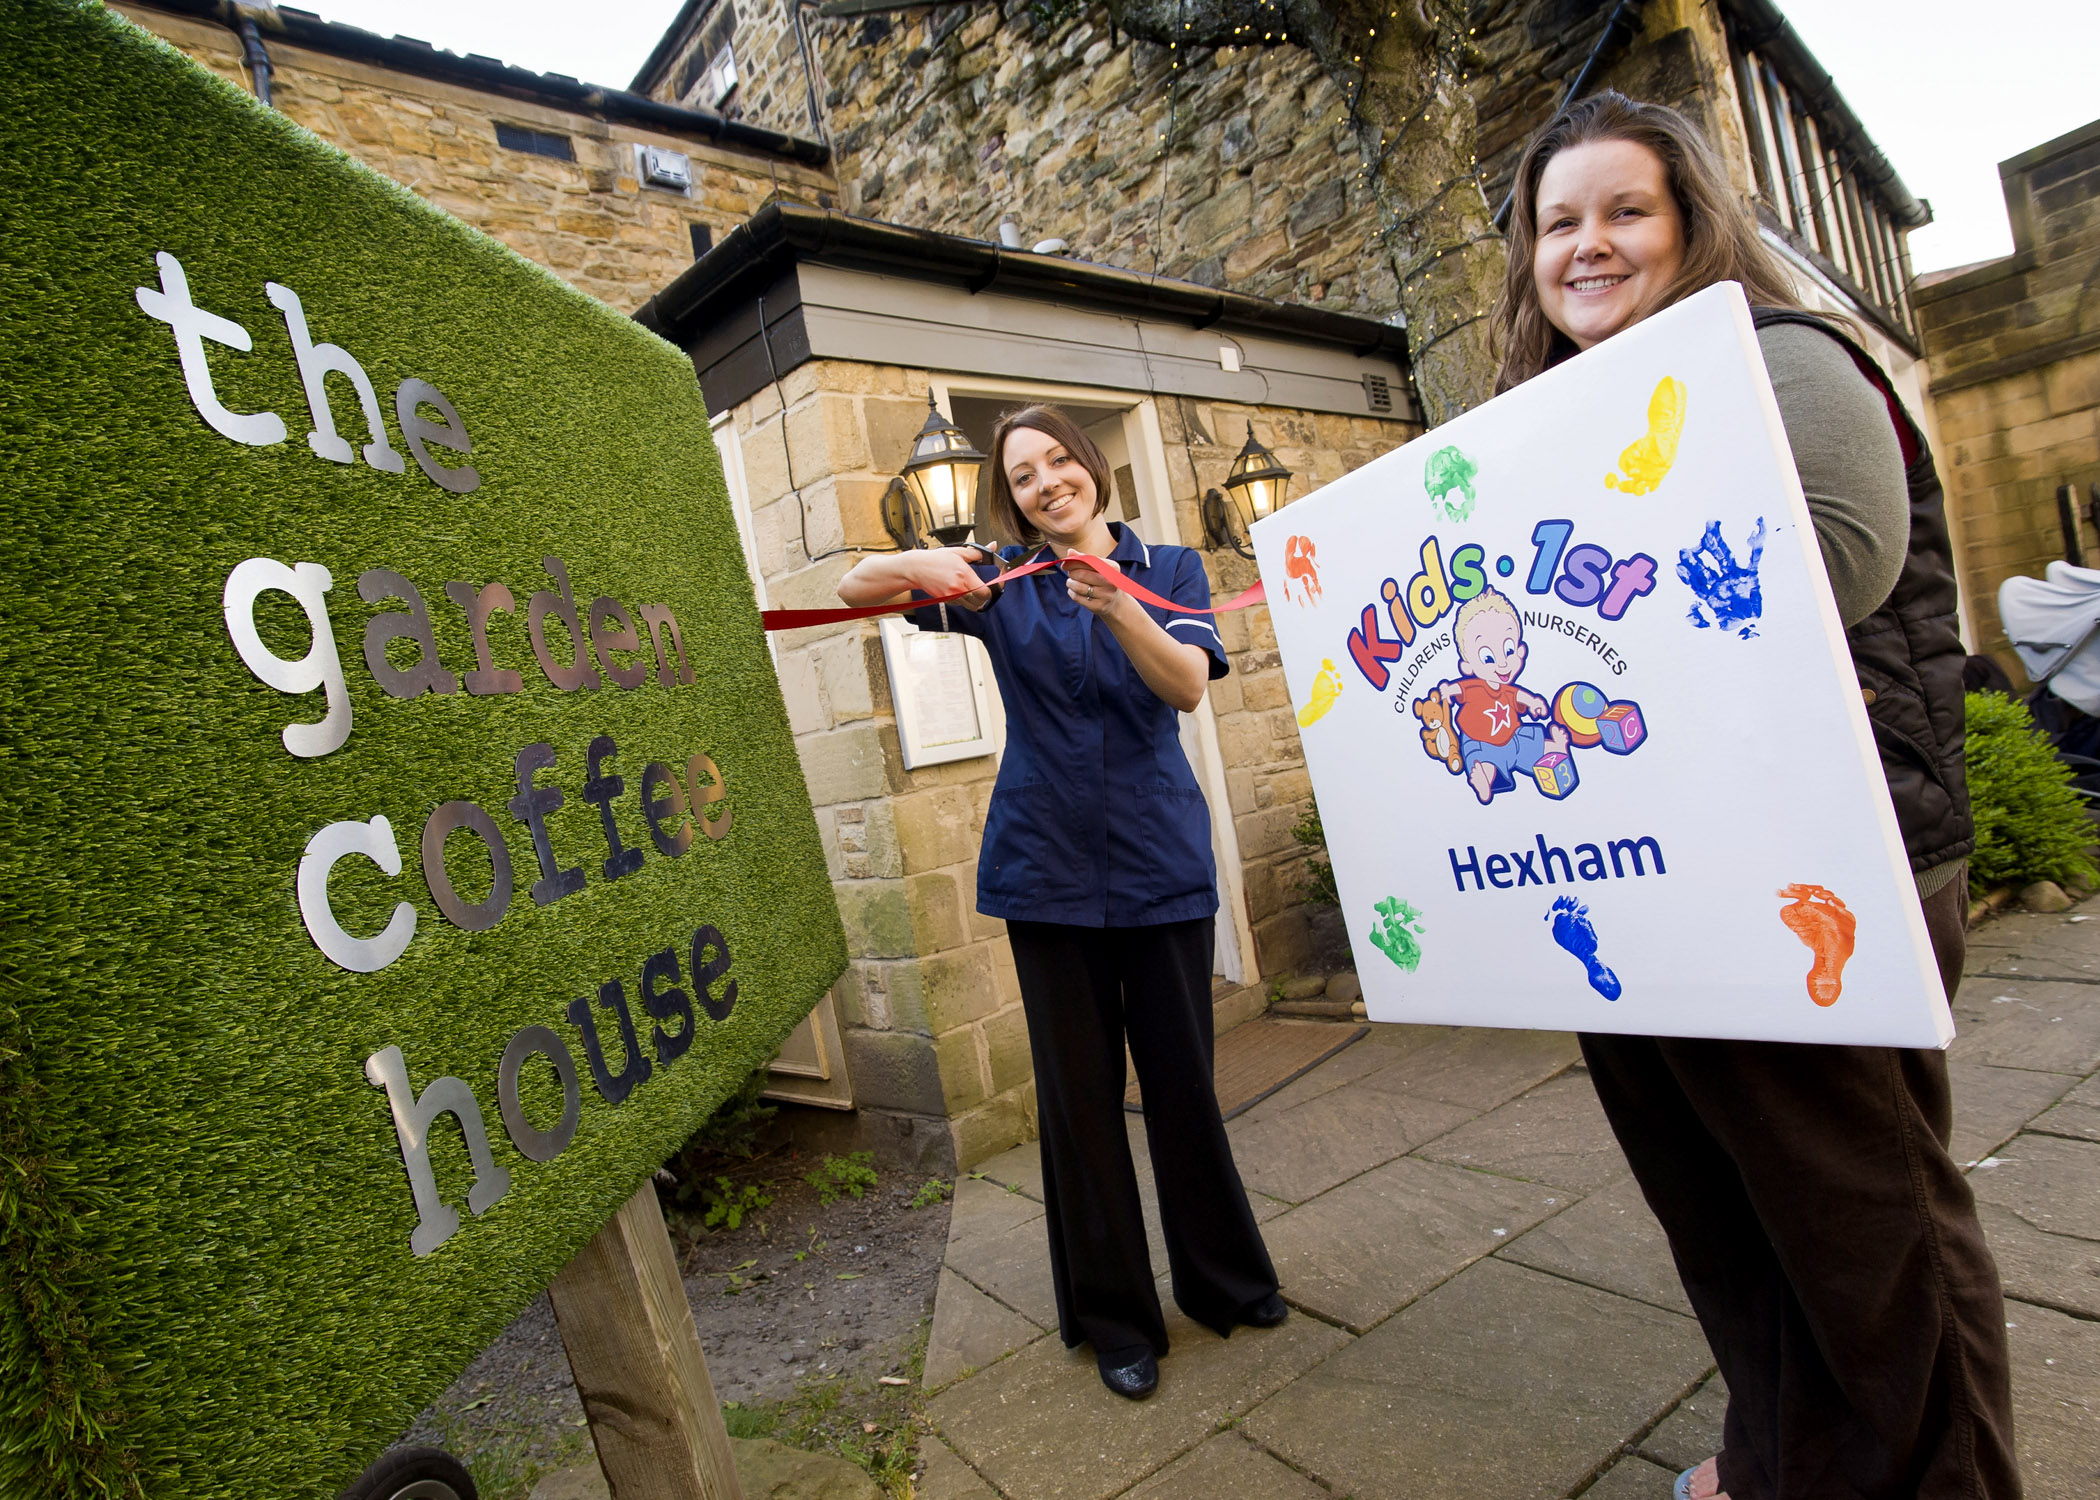 Kids 1st Hexham launches the new Baby Lounge at The Garden Coffee House